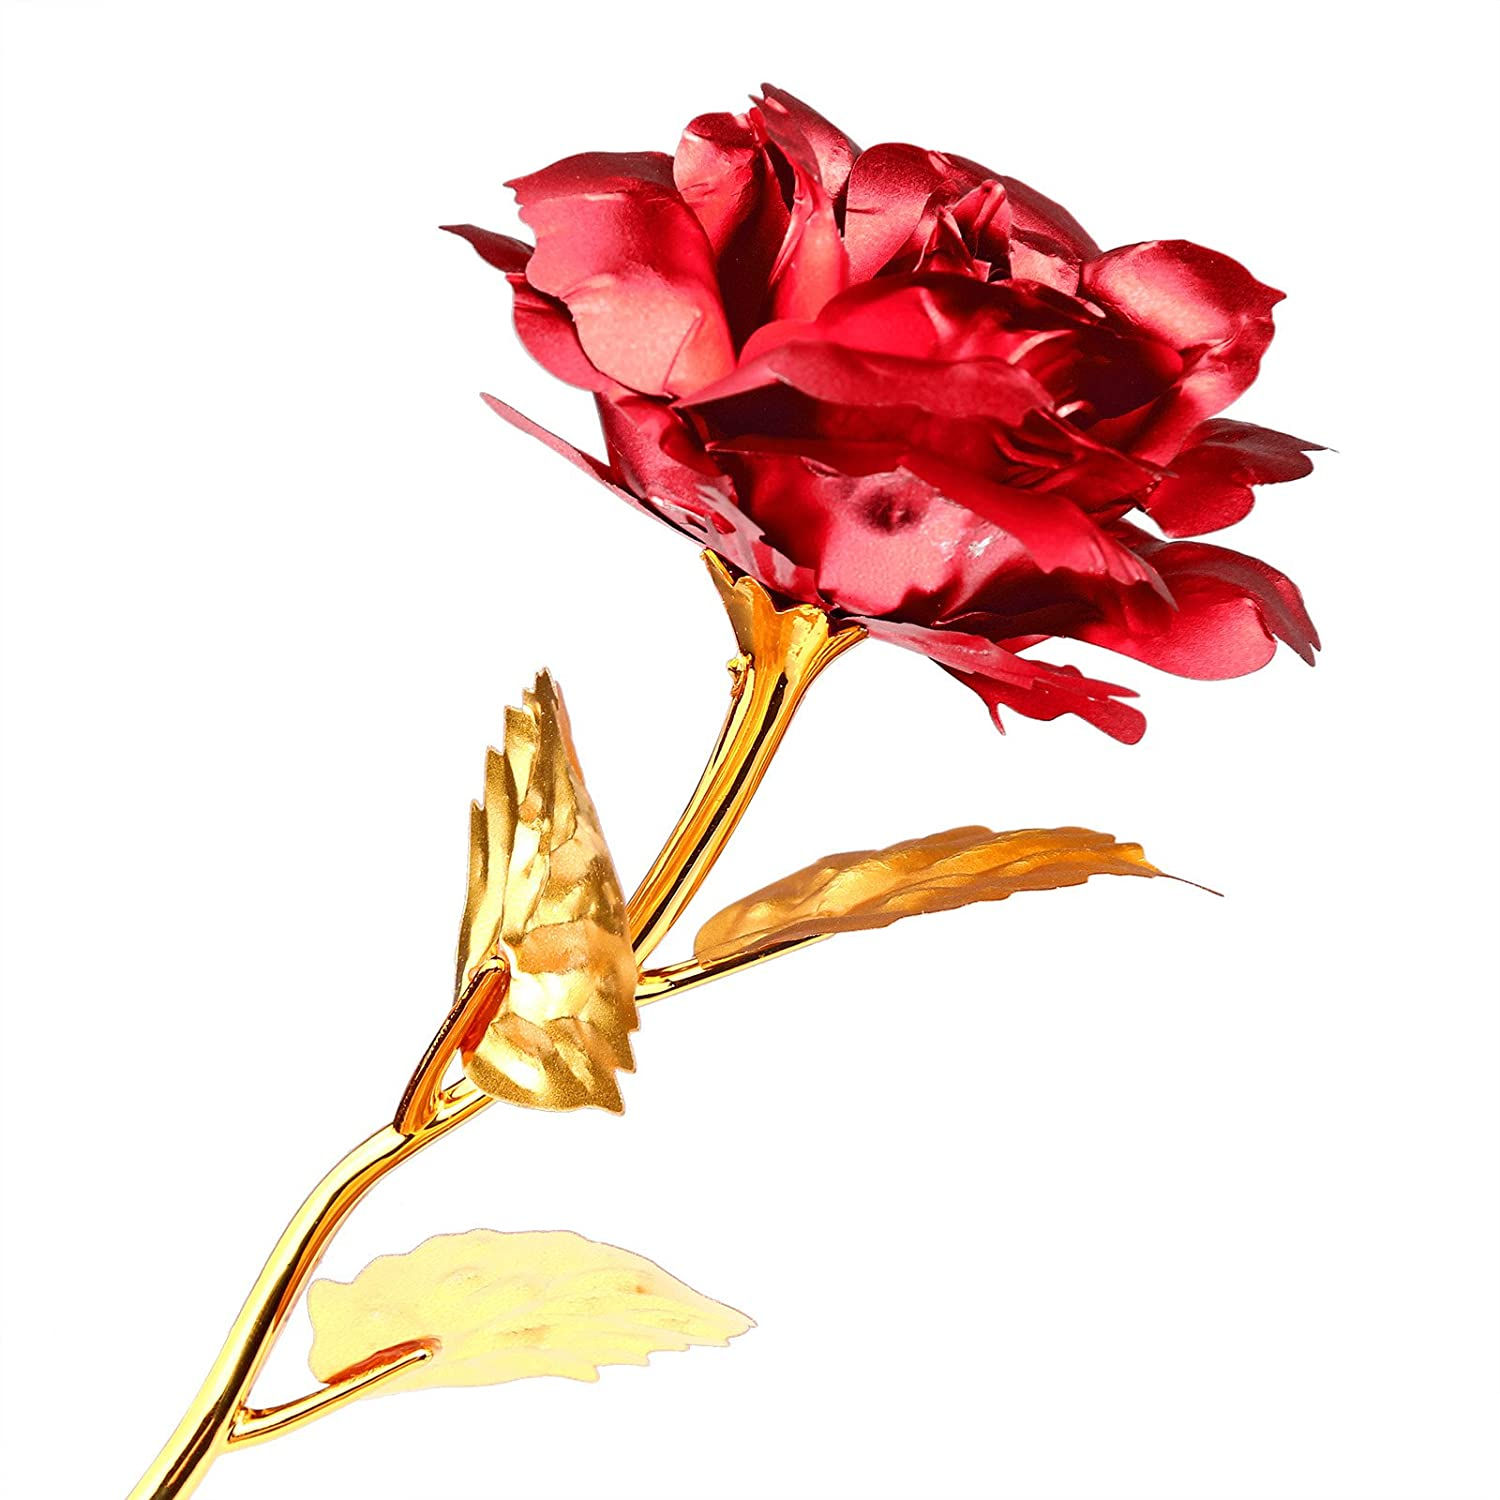 Amazon lemonbest 24k gold plated rose flower creative amazon lemonbest 24k gold plated rose flower creative thanksgiving mothers day valentines day gift red office products izmirmasajfo